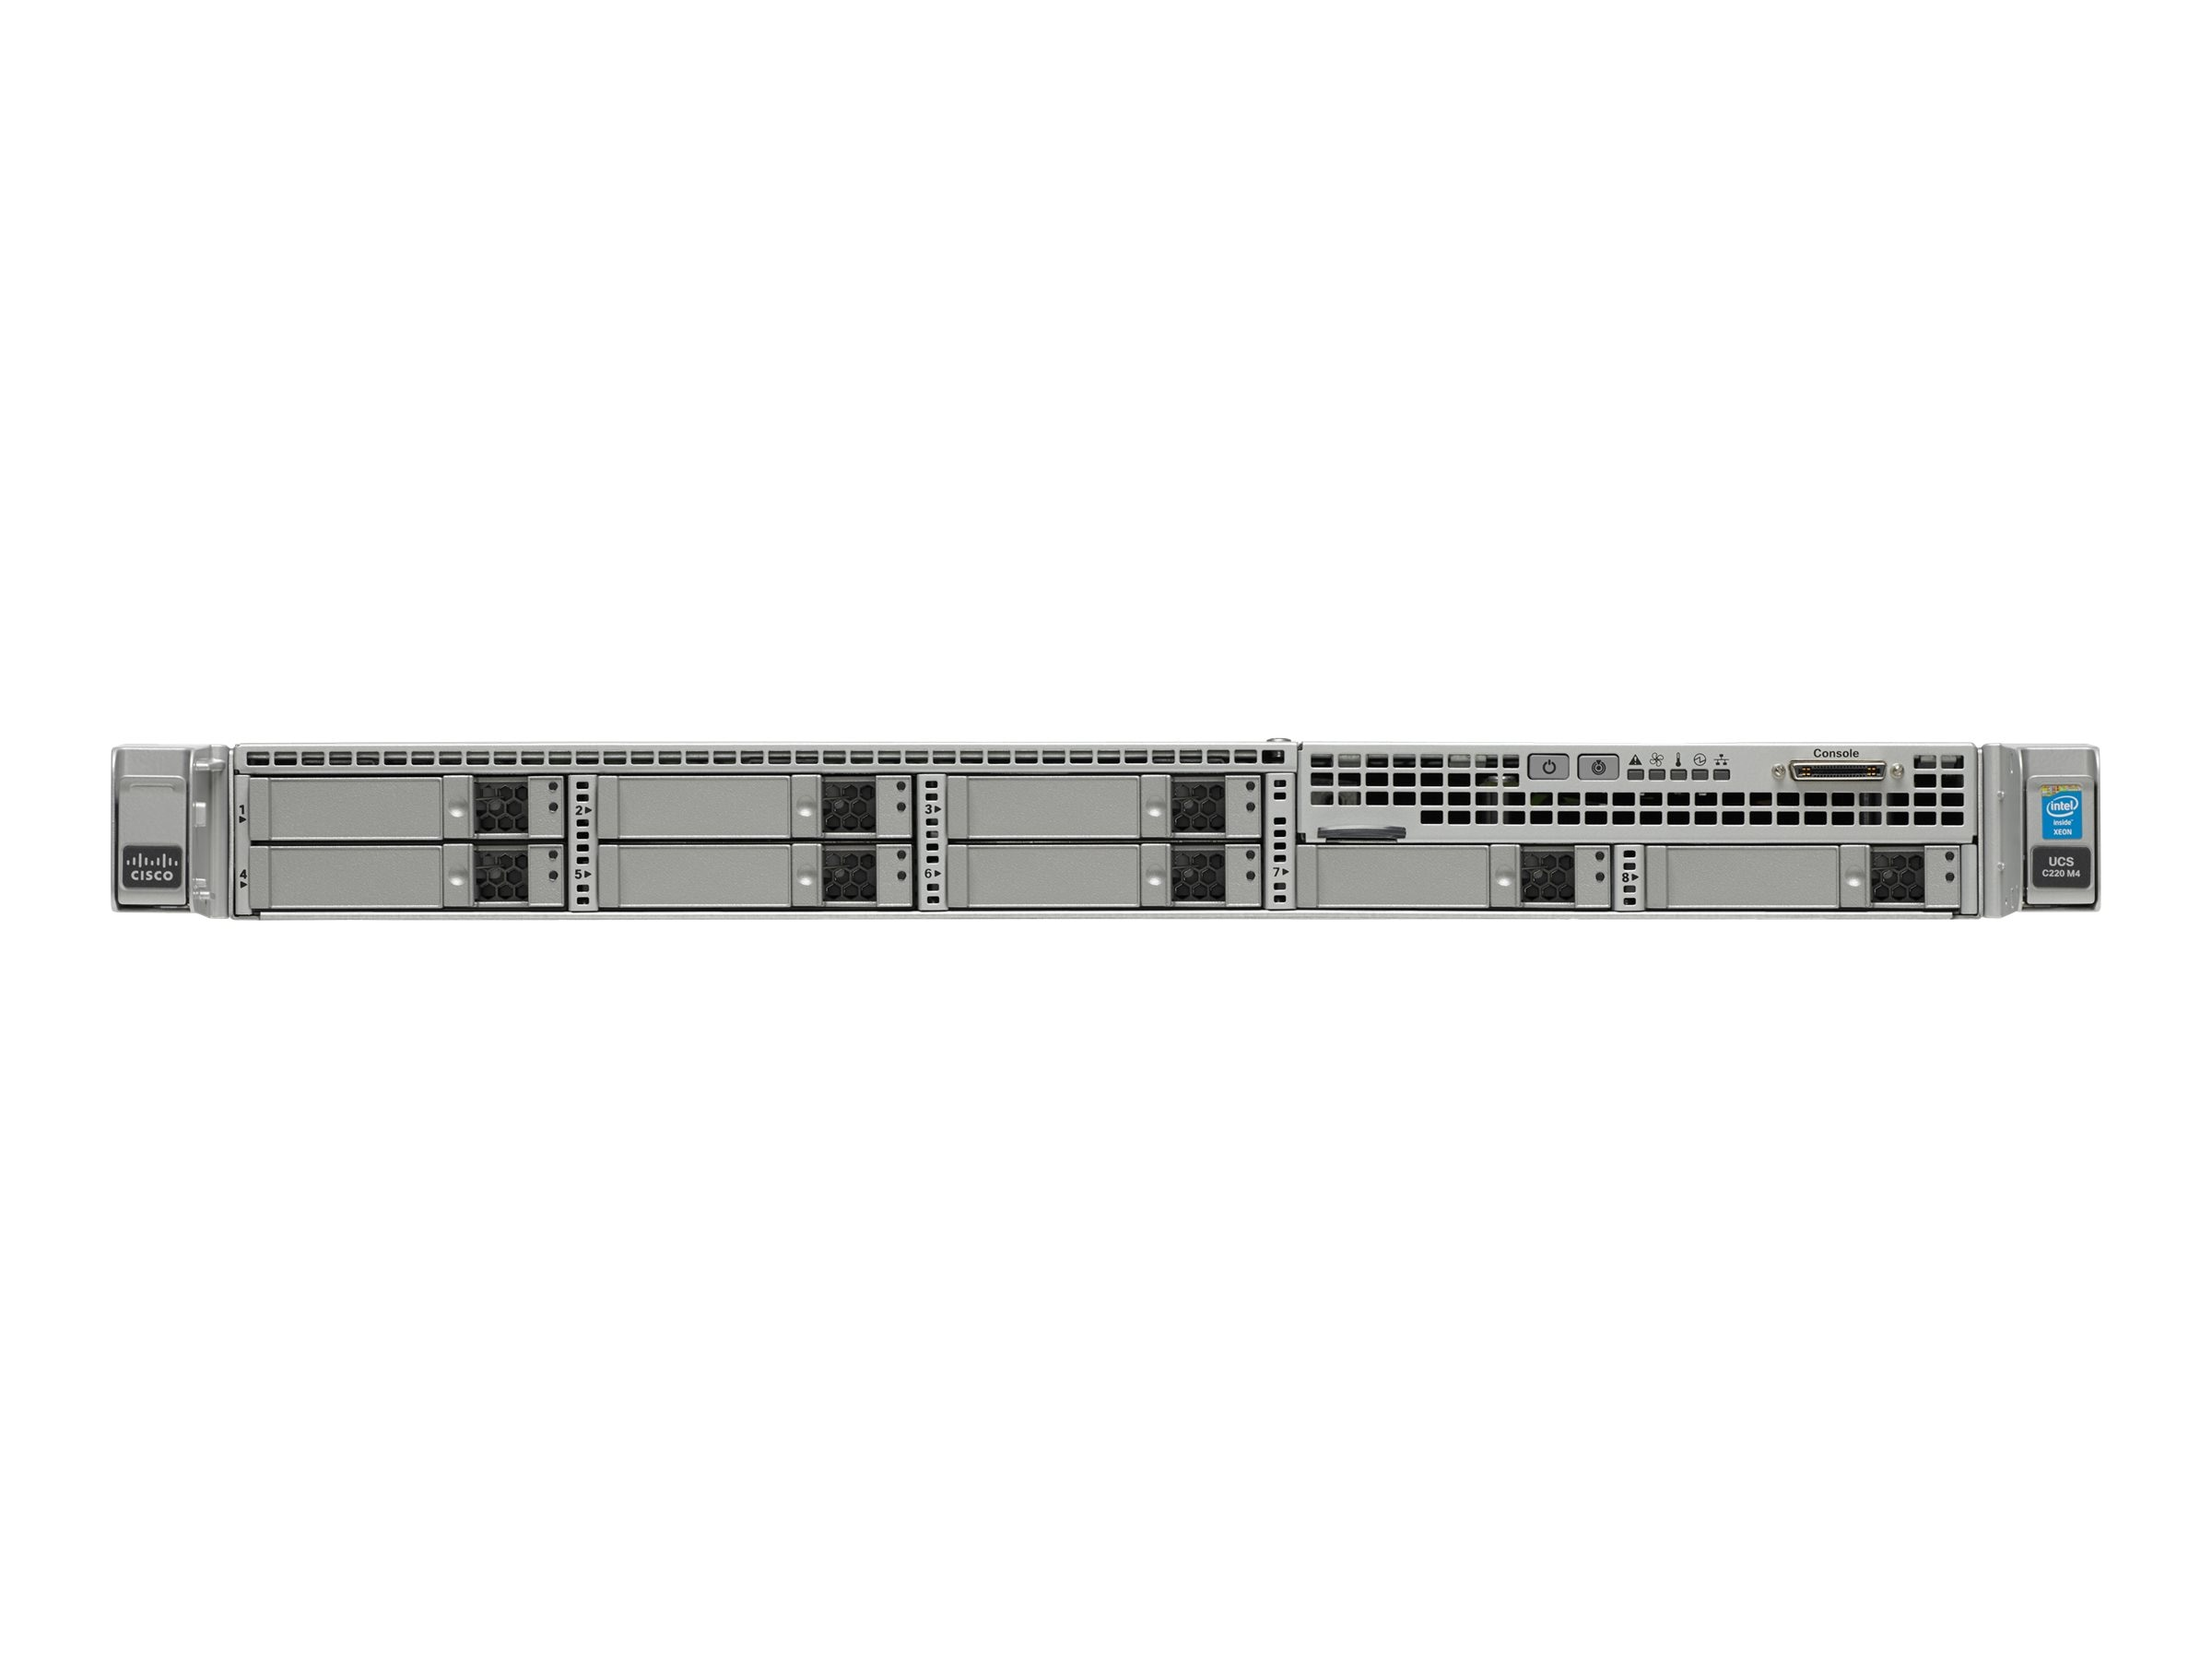 Cisco UCS C220 M4 Advanced 1 (2x)Xeon E5-2680 v3 128GB VIC1227, UCS-SPL-C220M4-A1